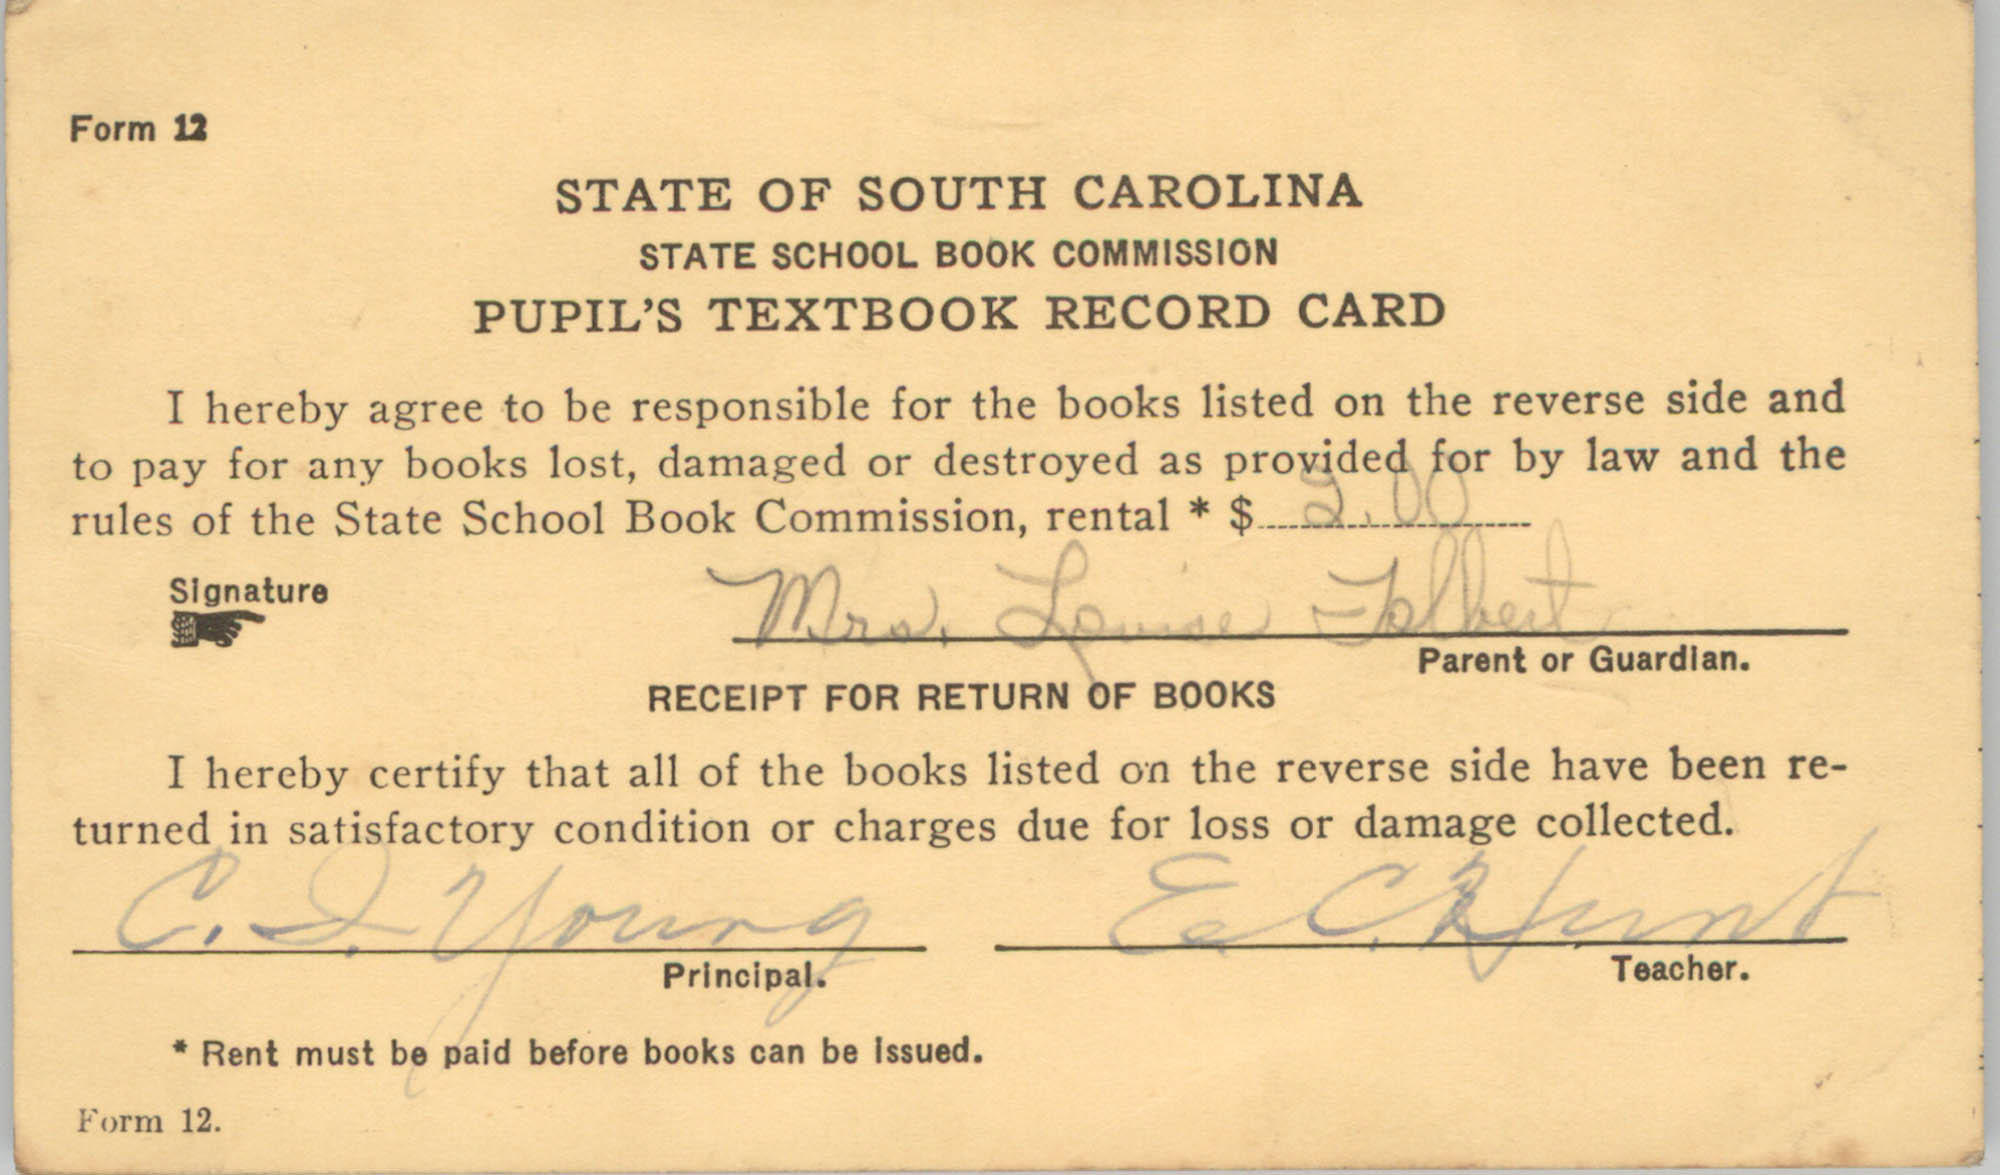 State of South Carolina State School Book Commission Pupil's Textbook Record Cards, Front Card 4